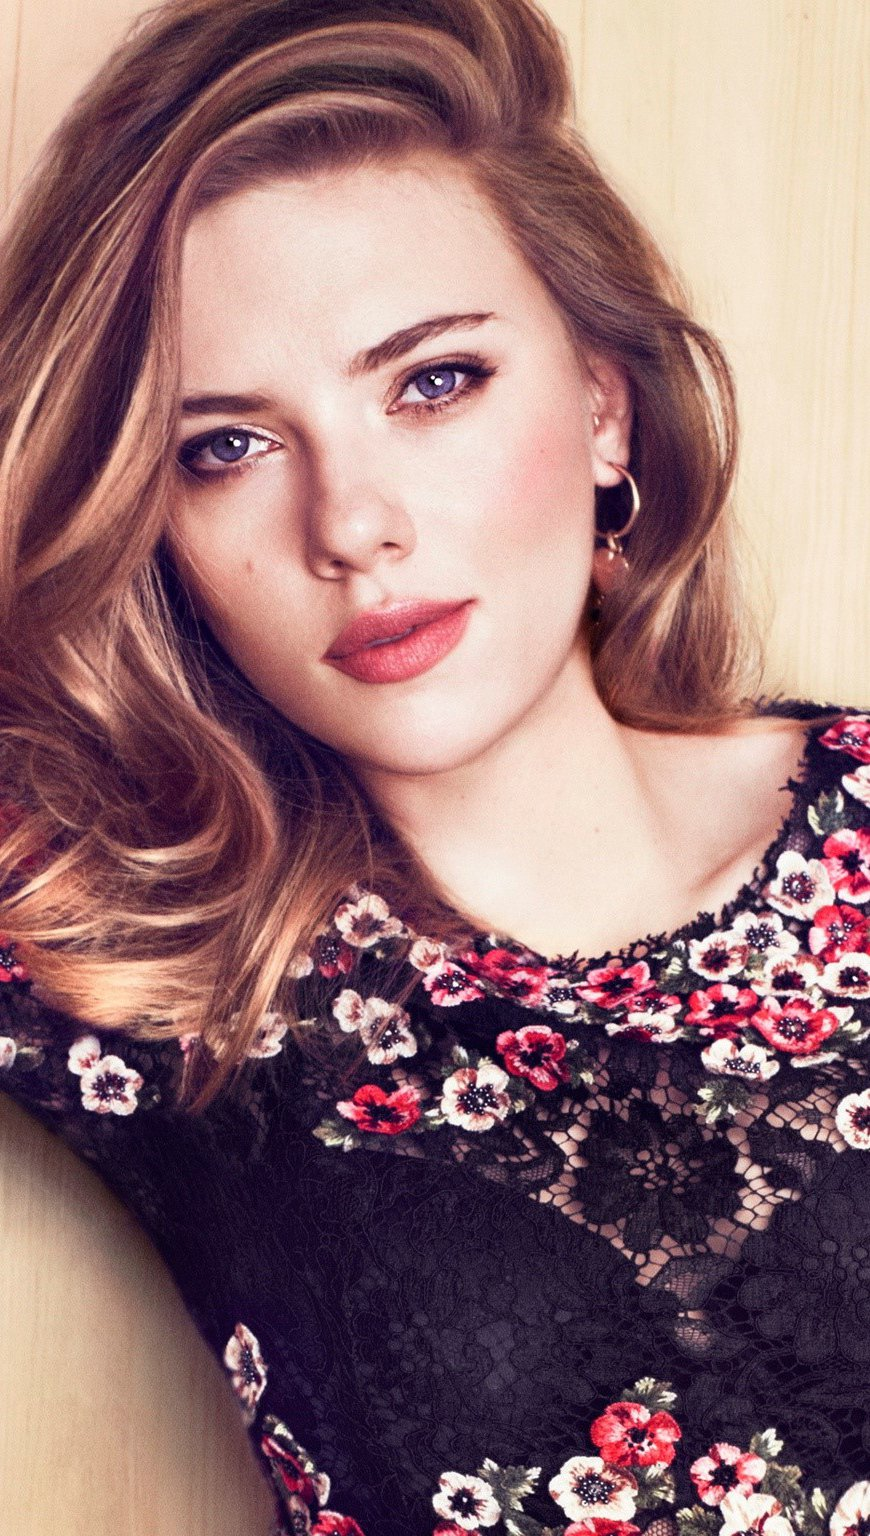 Wallpaper Scarlett Johansson wearing clothes with Roses Vertical